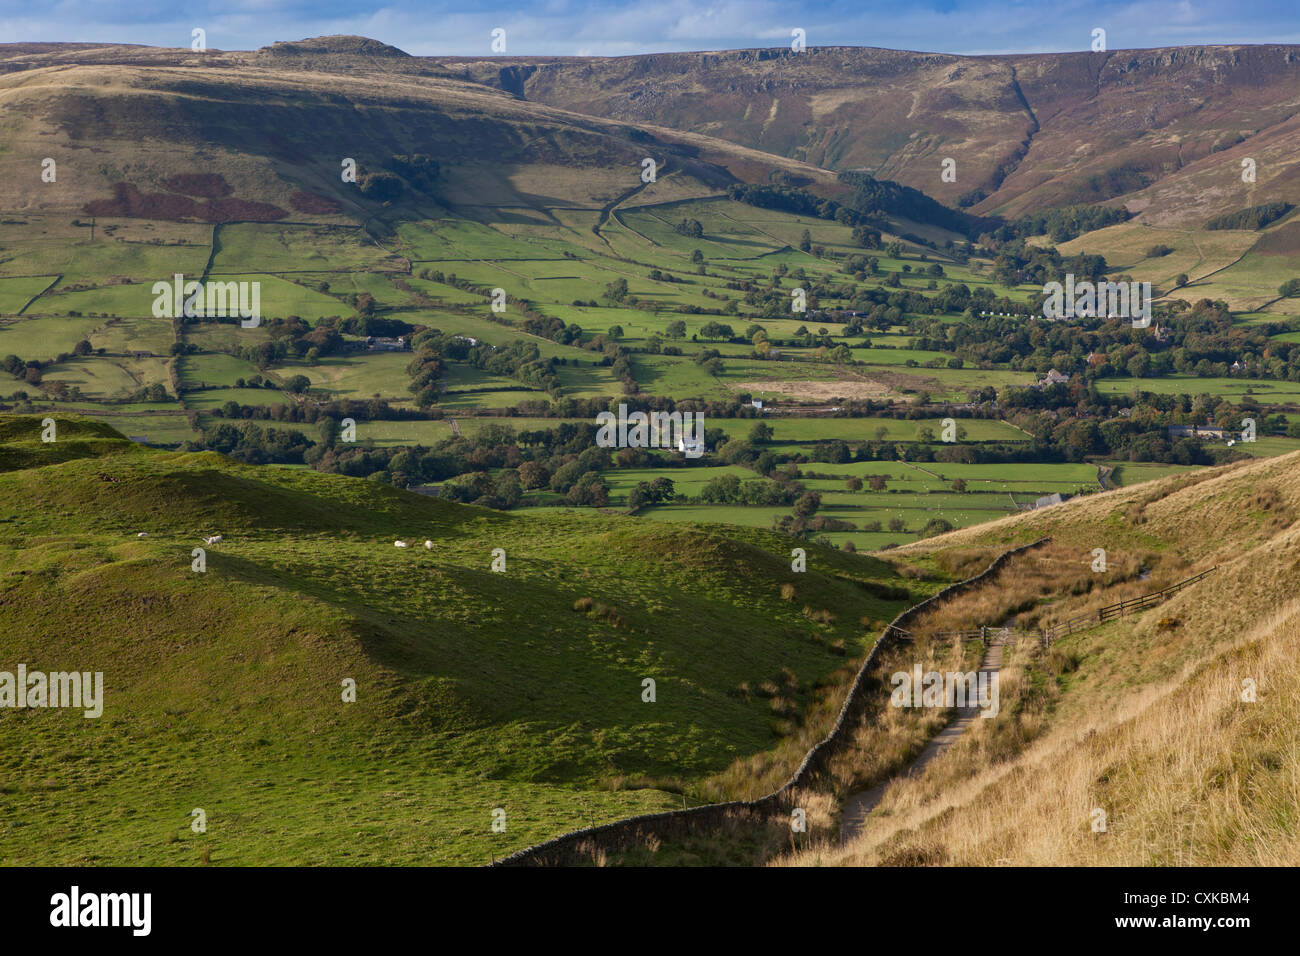 The Vale of Edale; from Mam Tor; with Edale Village nestled below Kinder Scout, Peak District, Derbyshire, England - Stock Image